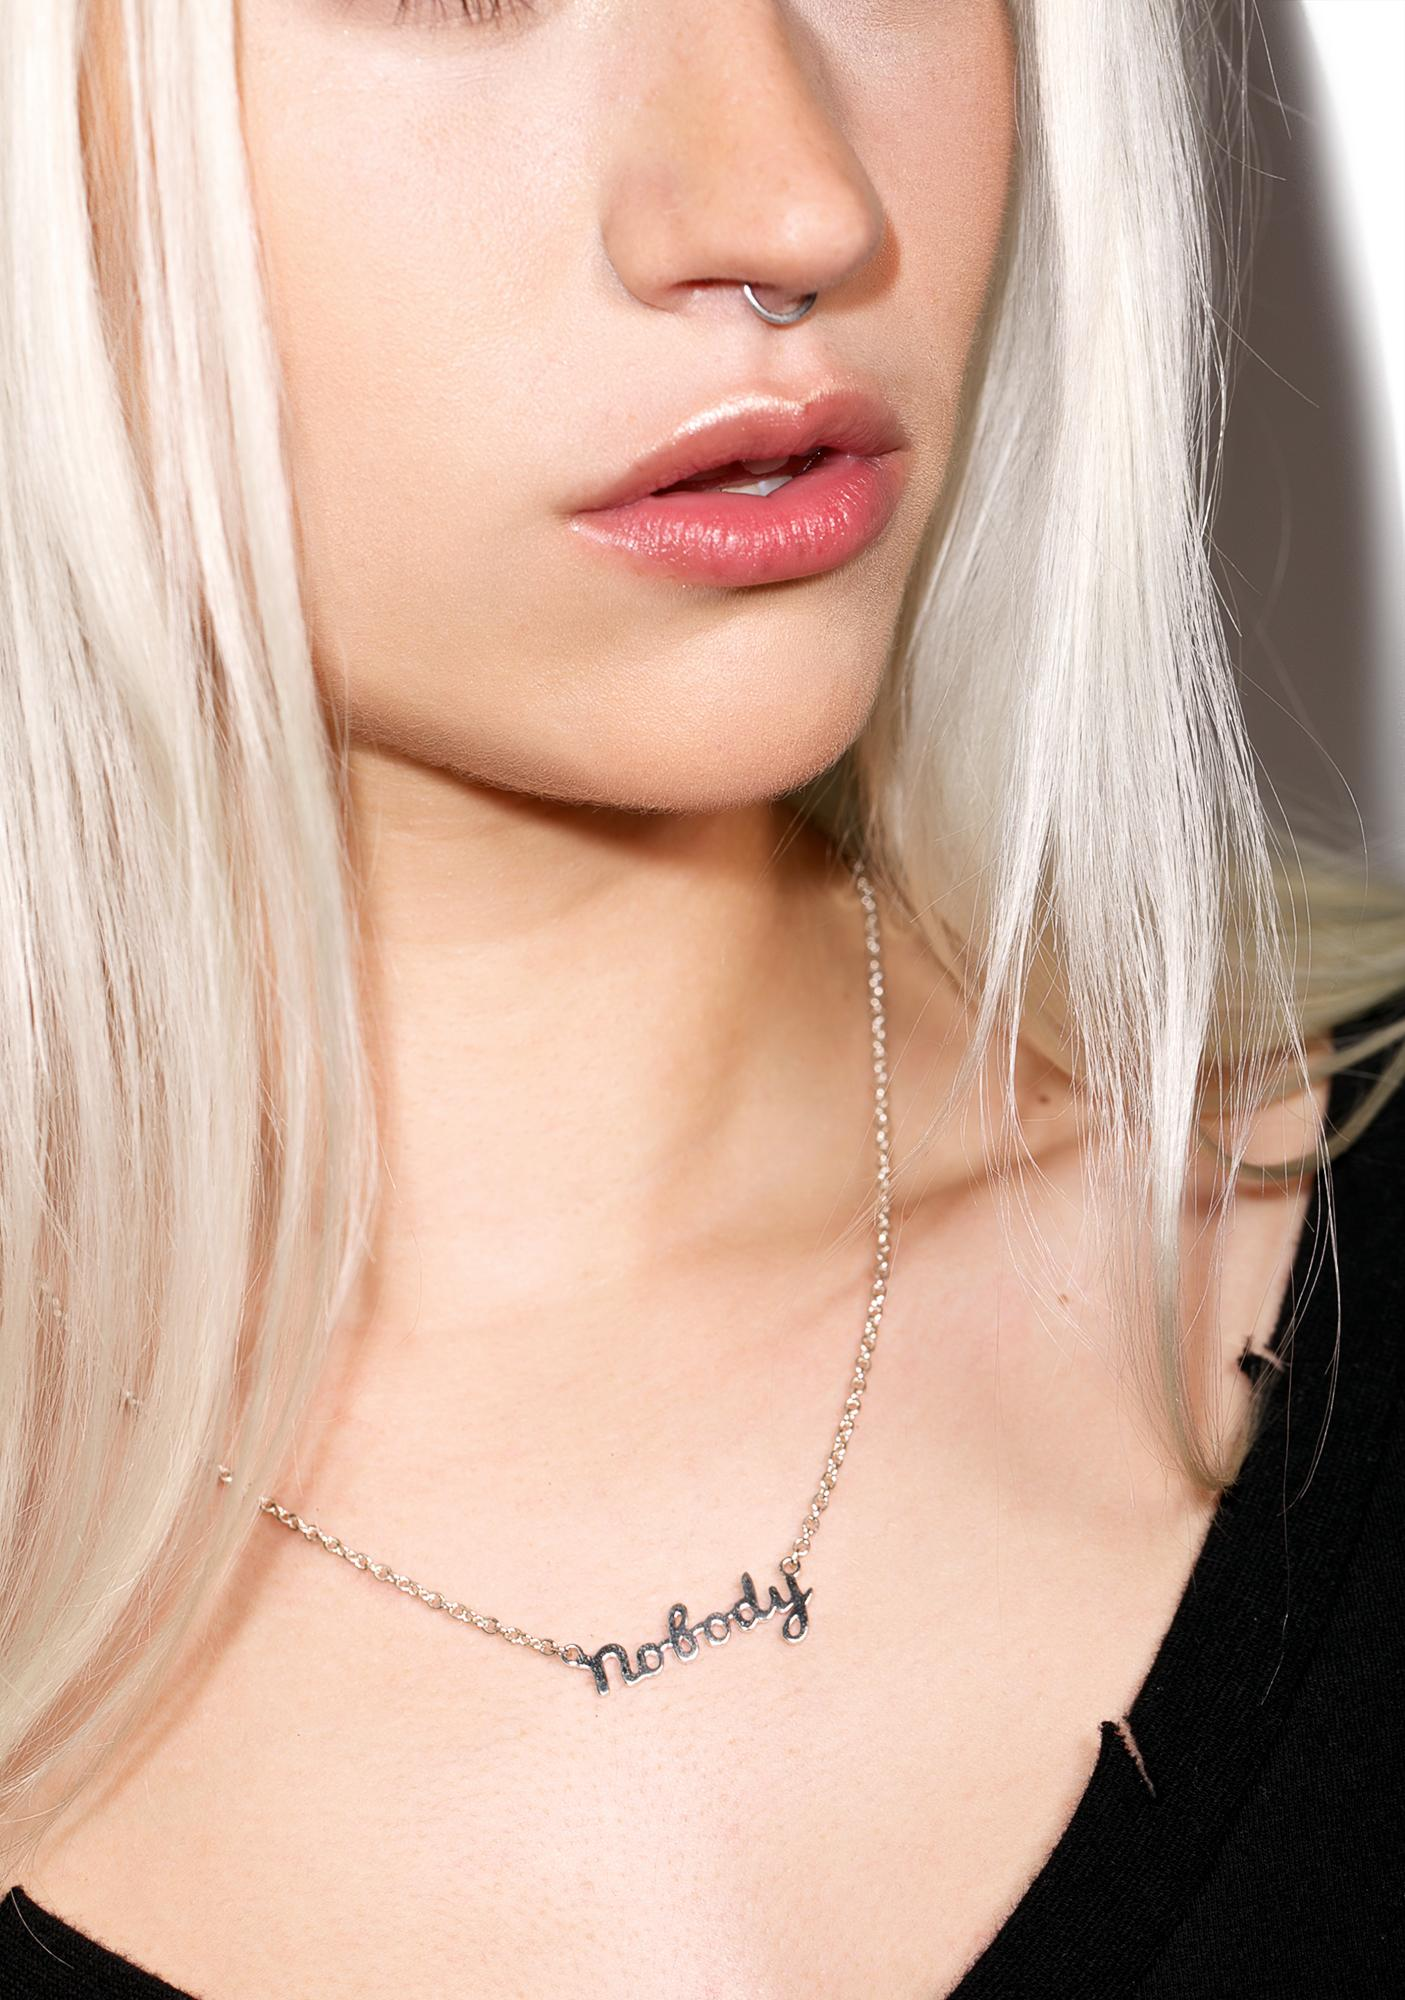 Disturbia Nobody Necklace